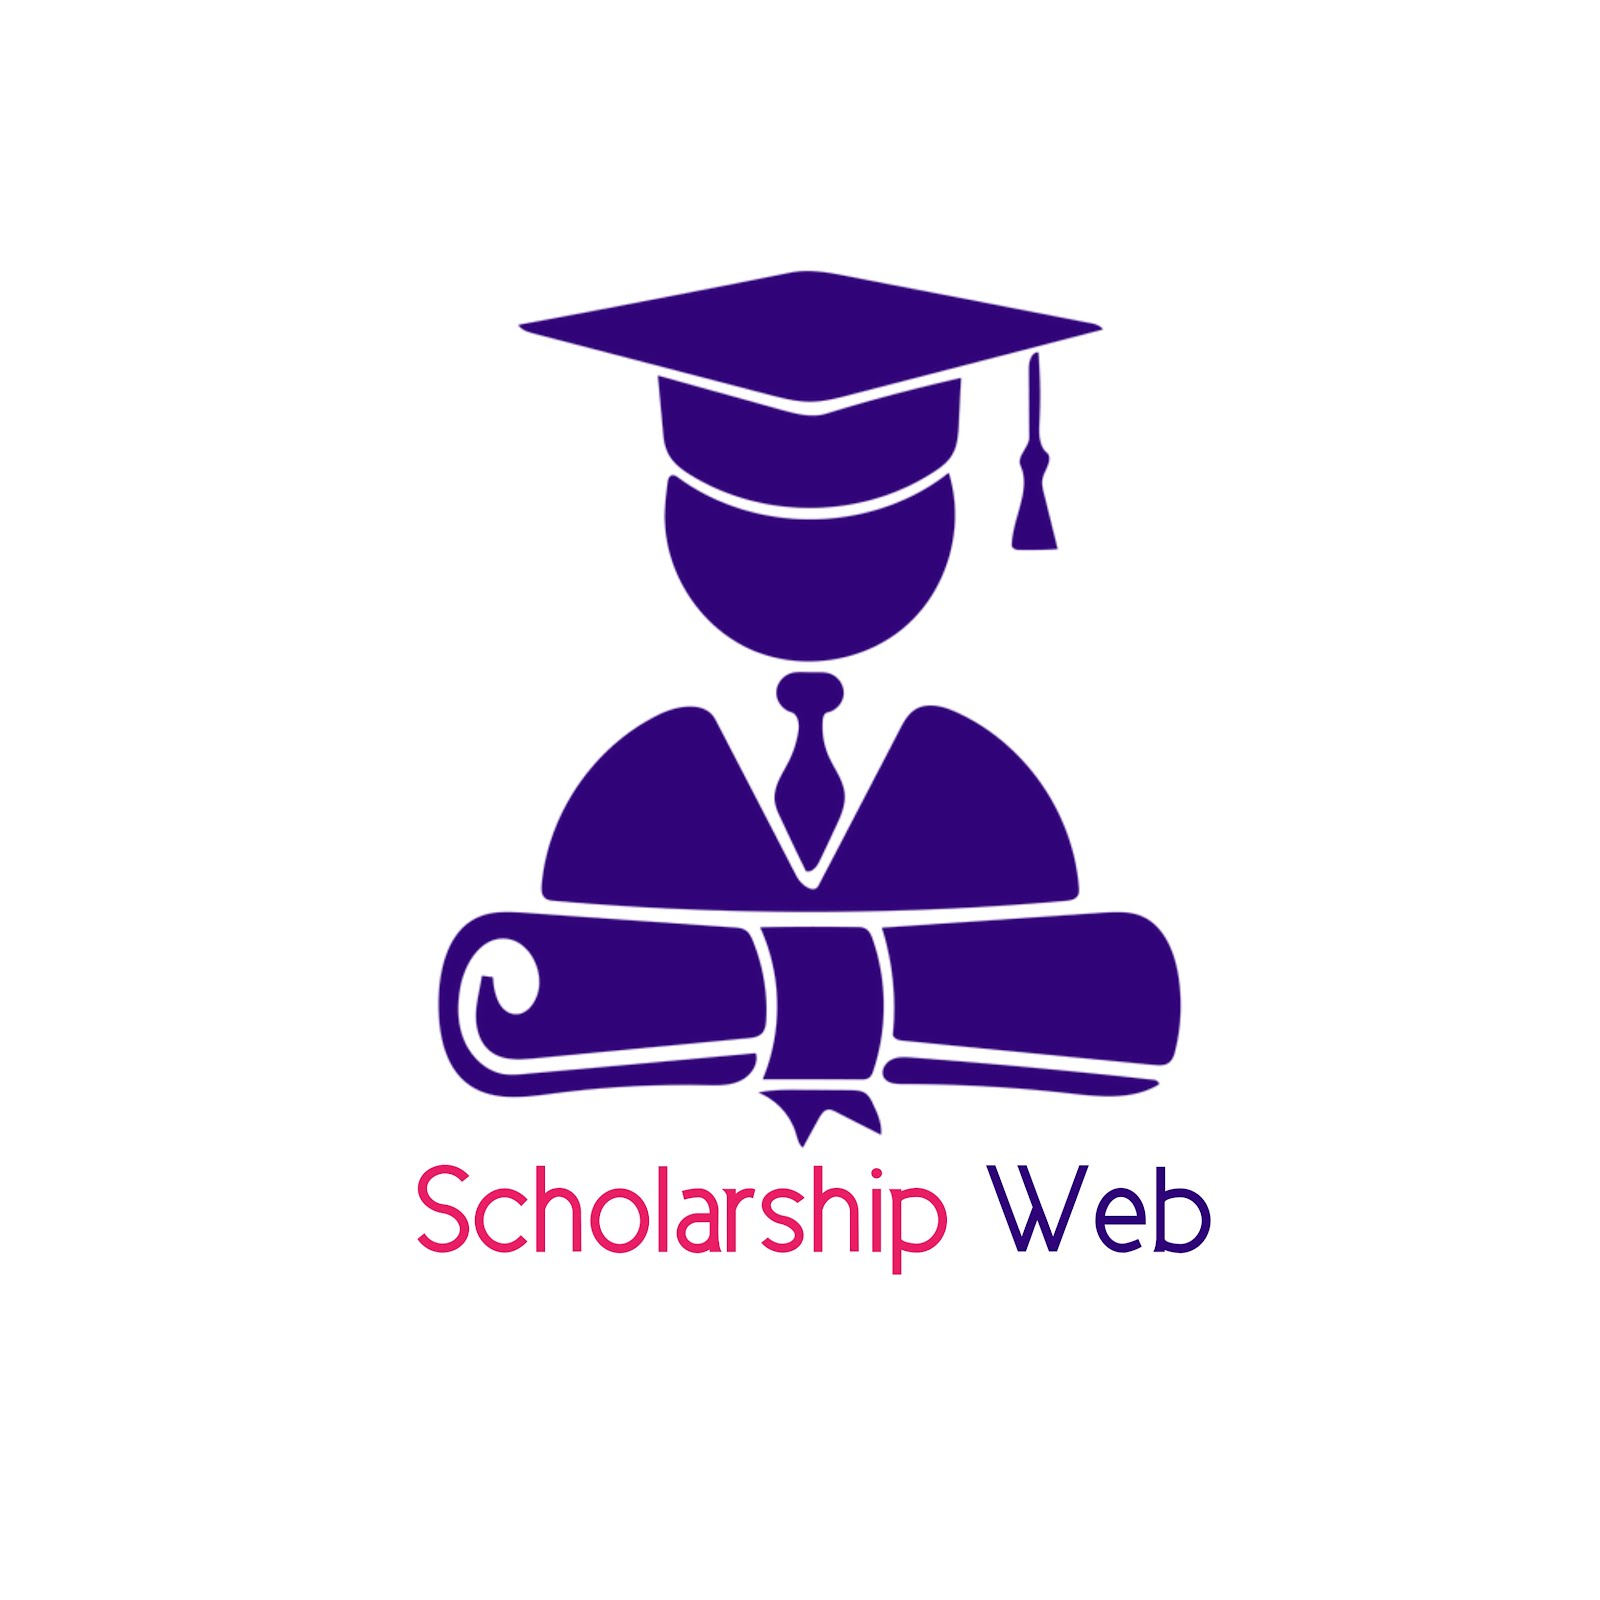 About Scholarship Web